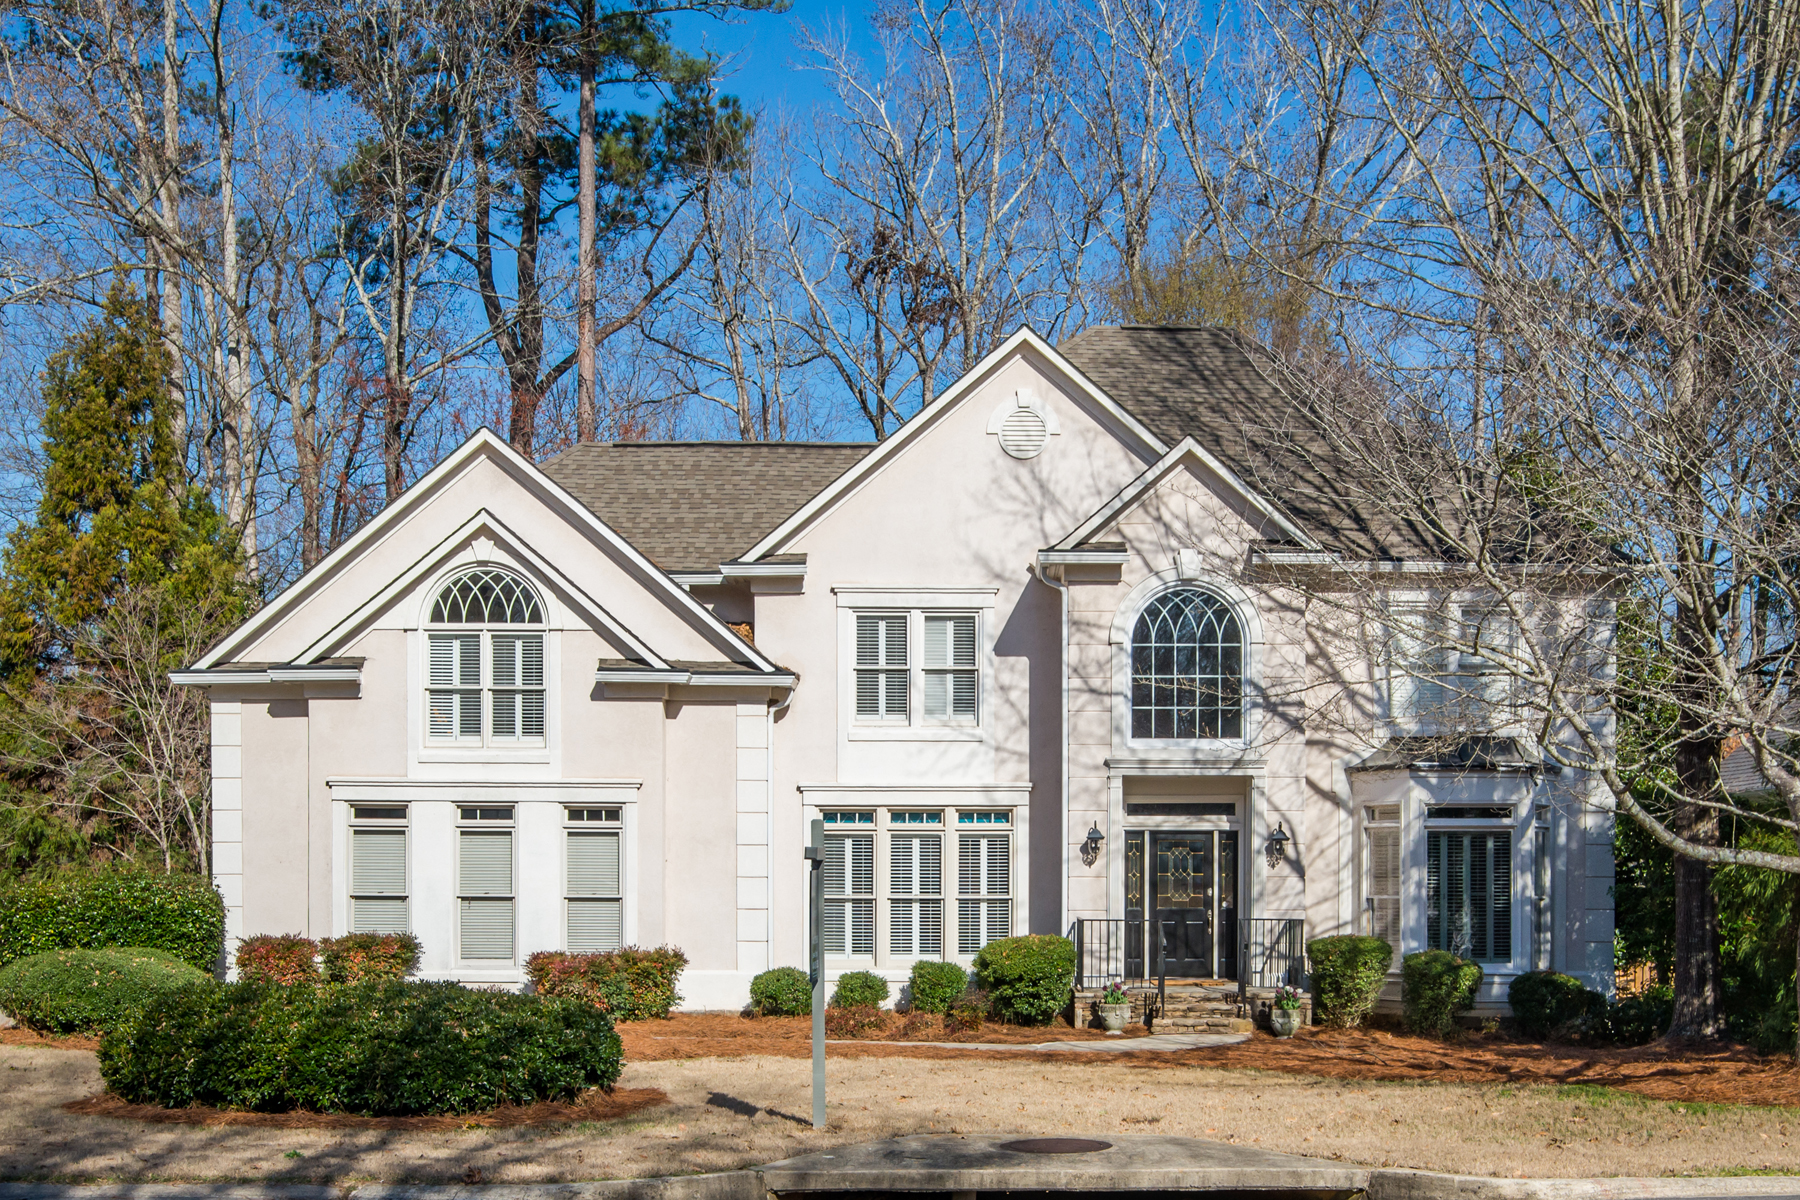 Single Family Home for Sale at Remodeled Peachtree Corners Home 6184 Poplar Bluff Circle Peachtree Corners, Georgia, 30092 United States